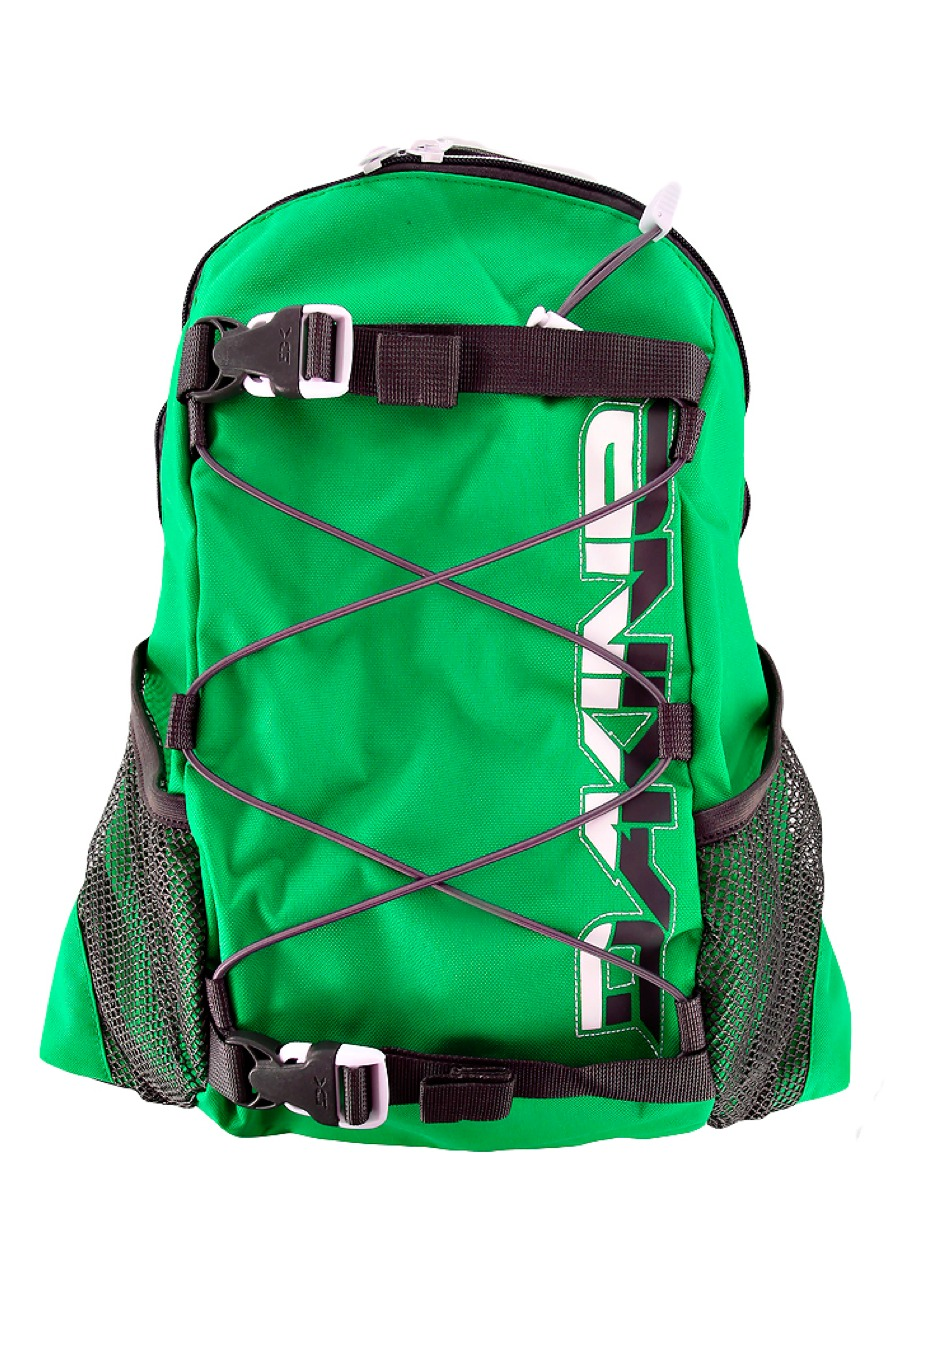 Dakine - Wonder Pack Green - Backpack - Impericon.com Worldwide